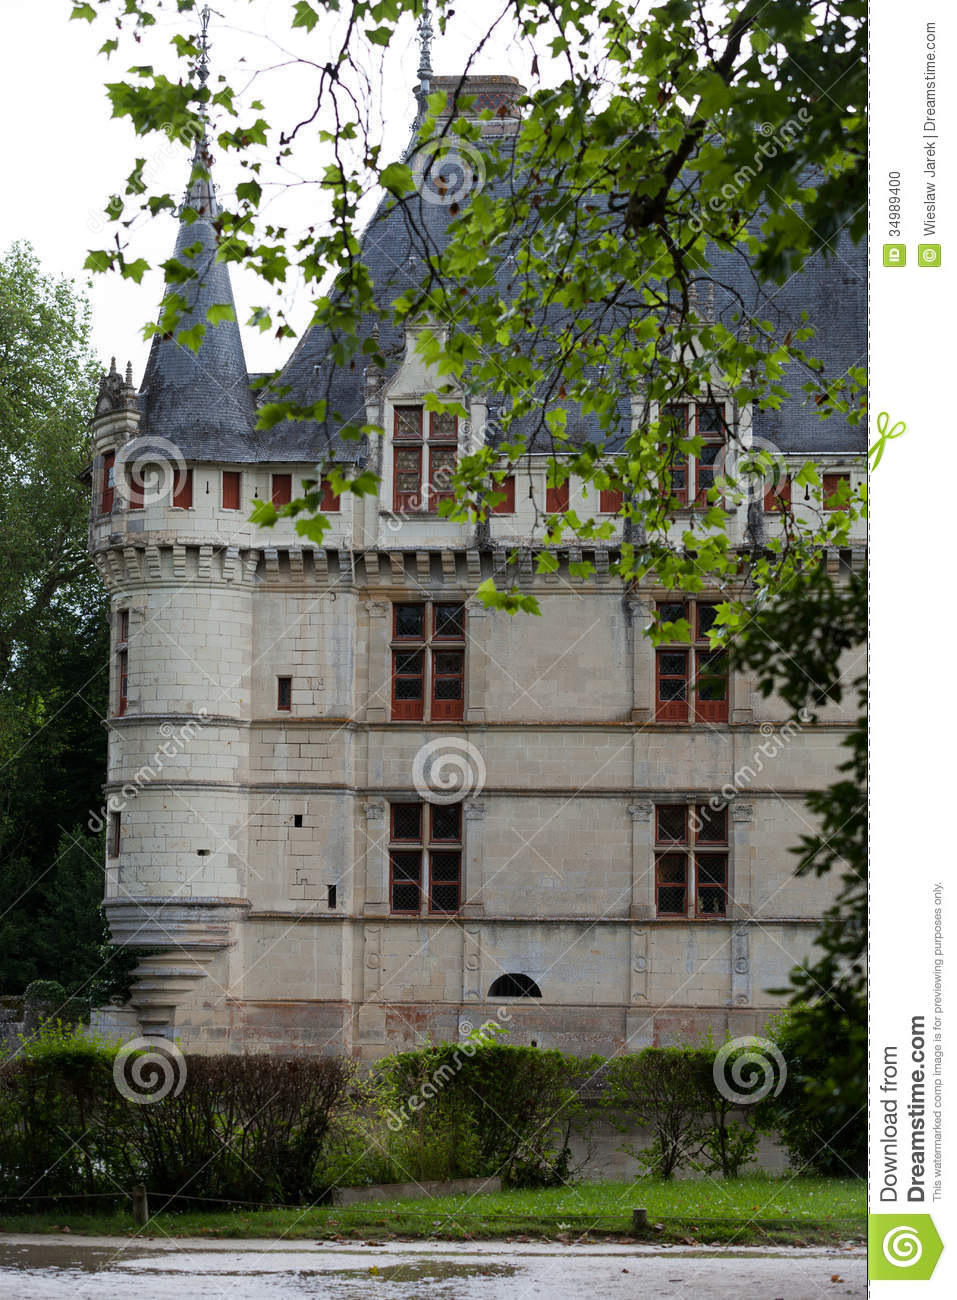 azay le rideau castle in the loire valley stock photo. Black Bedroom Furniture Sets. Home Design Ideas